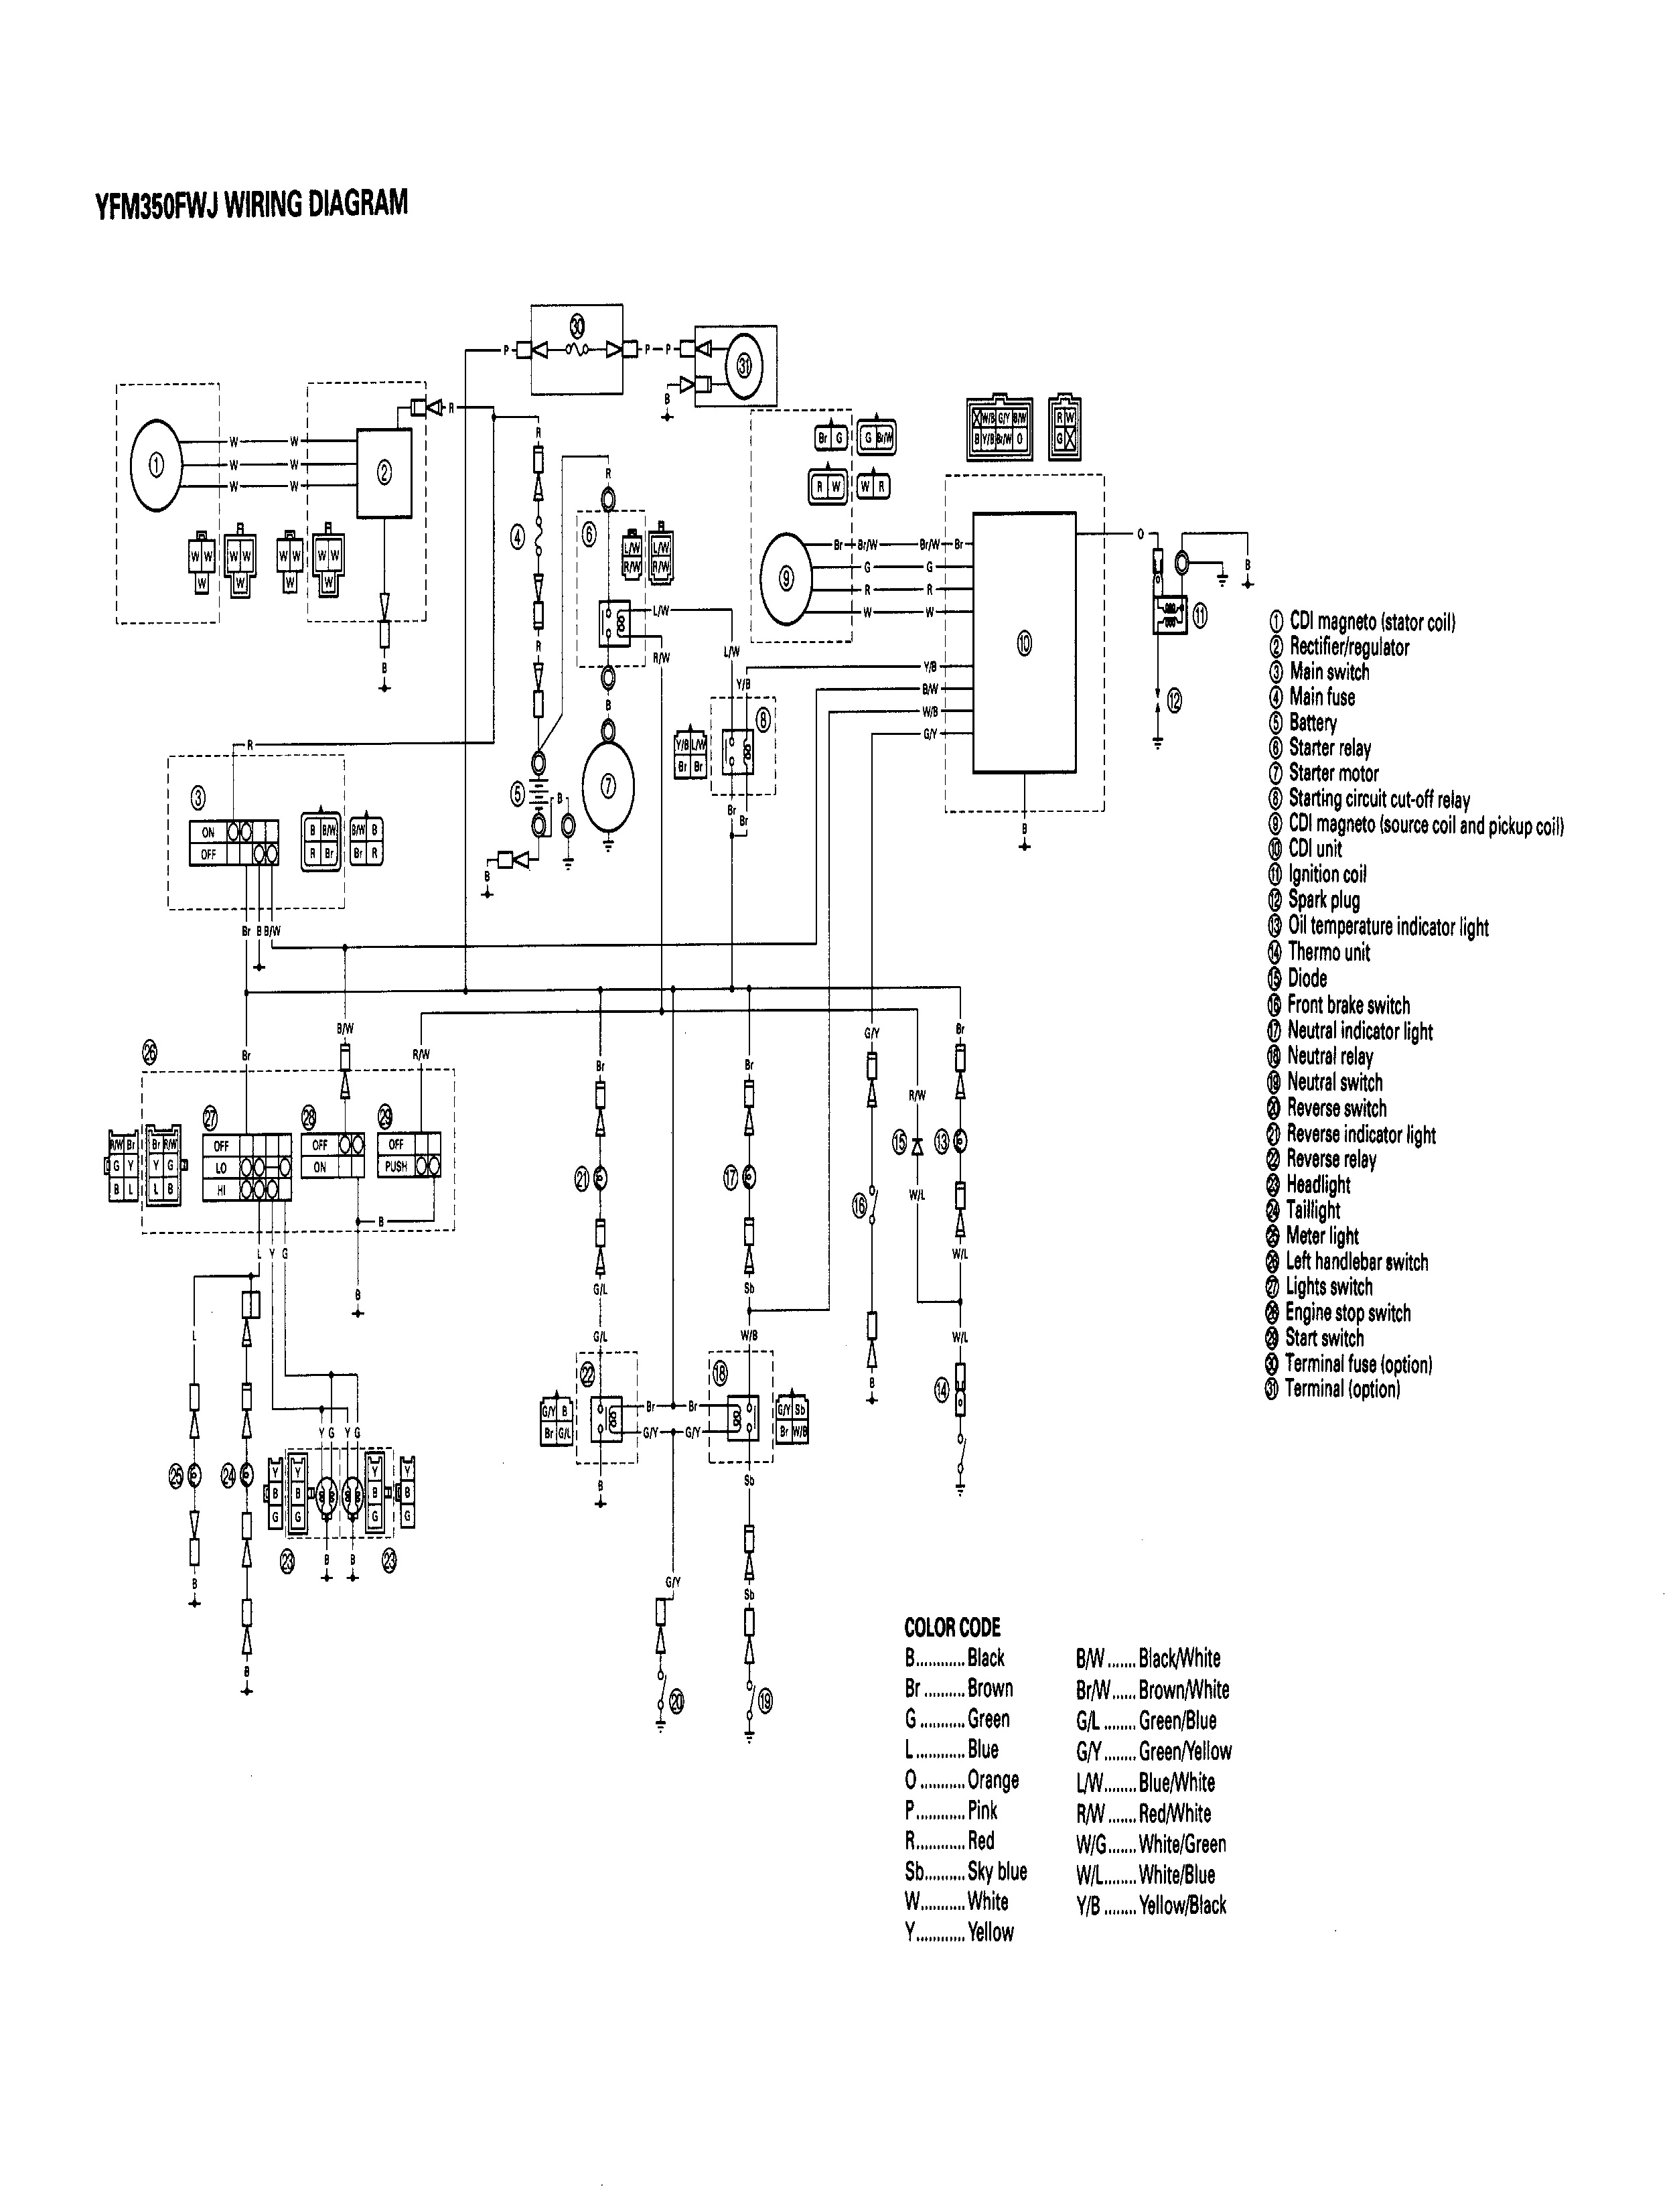 saab wiring diagram big 1997 yfm 600 wiring diagram 1997 wiring diagrams